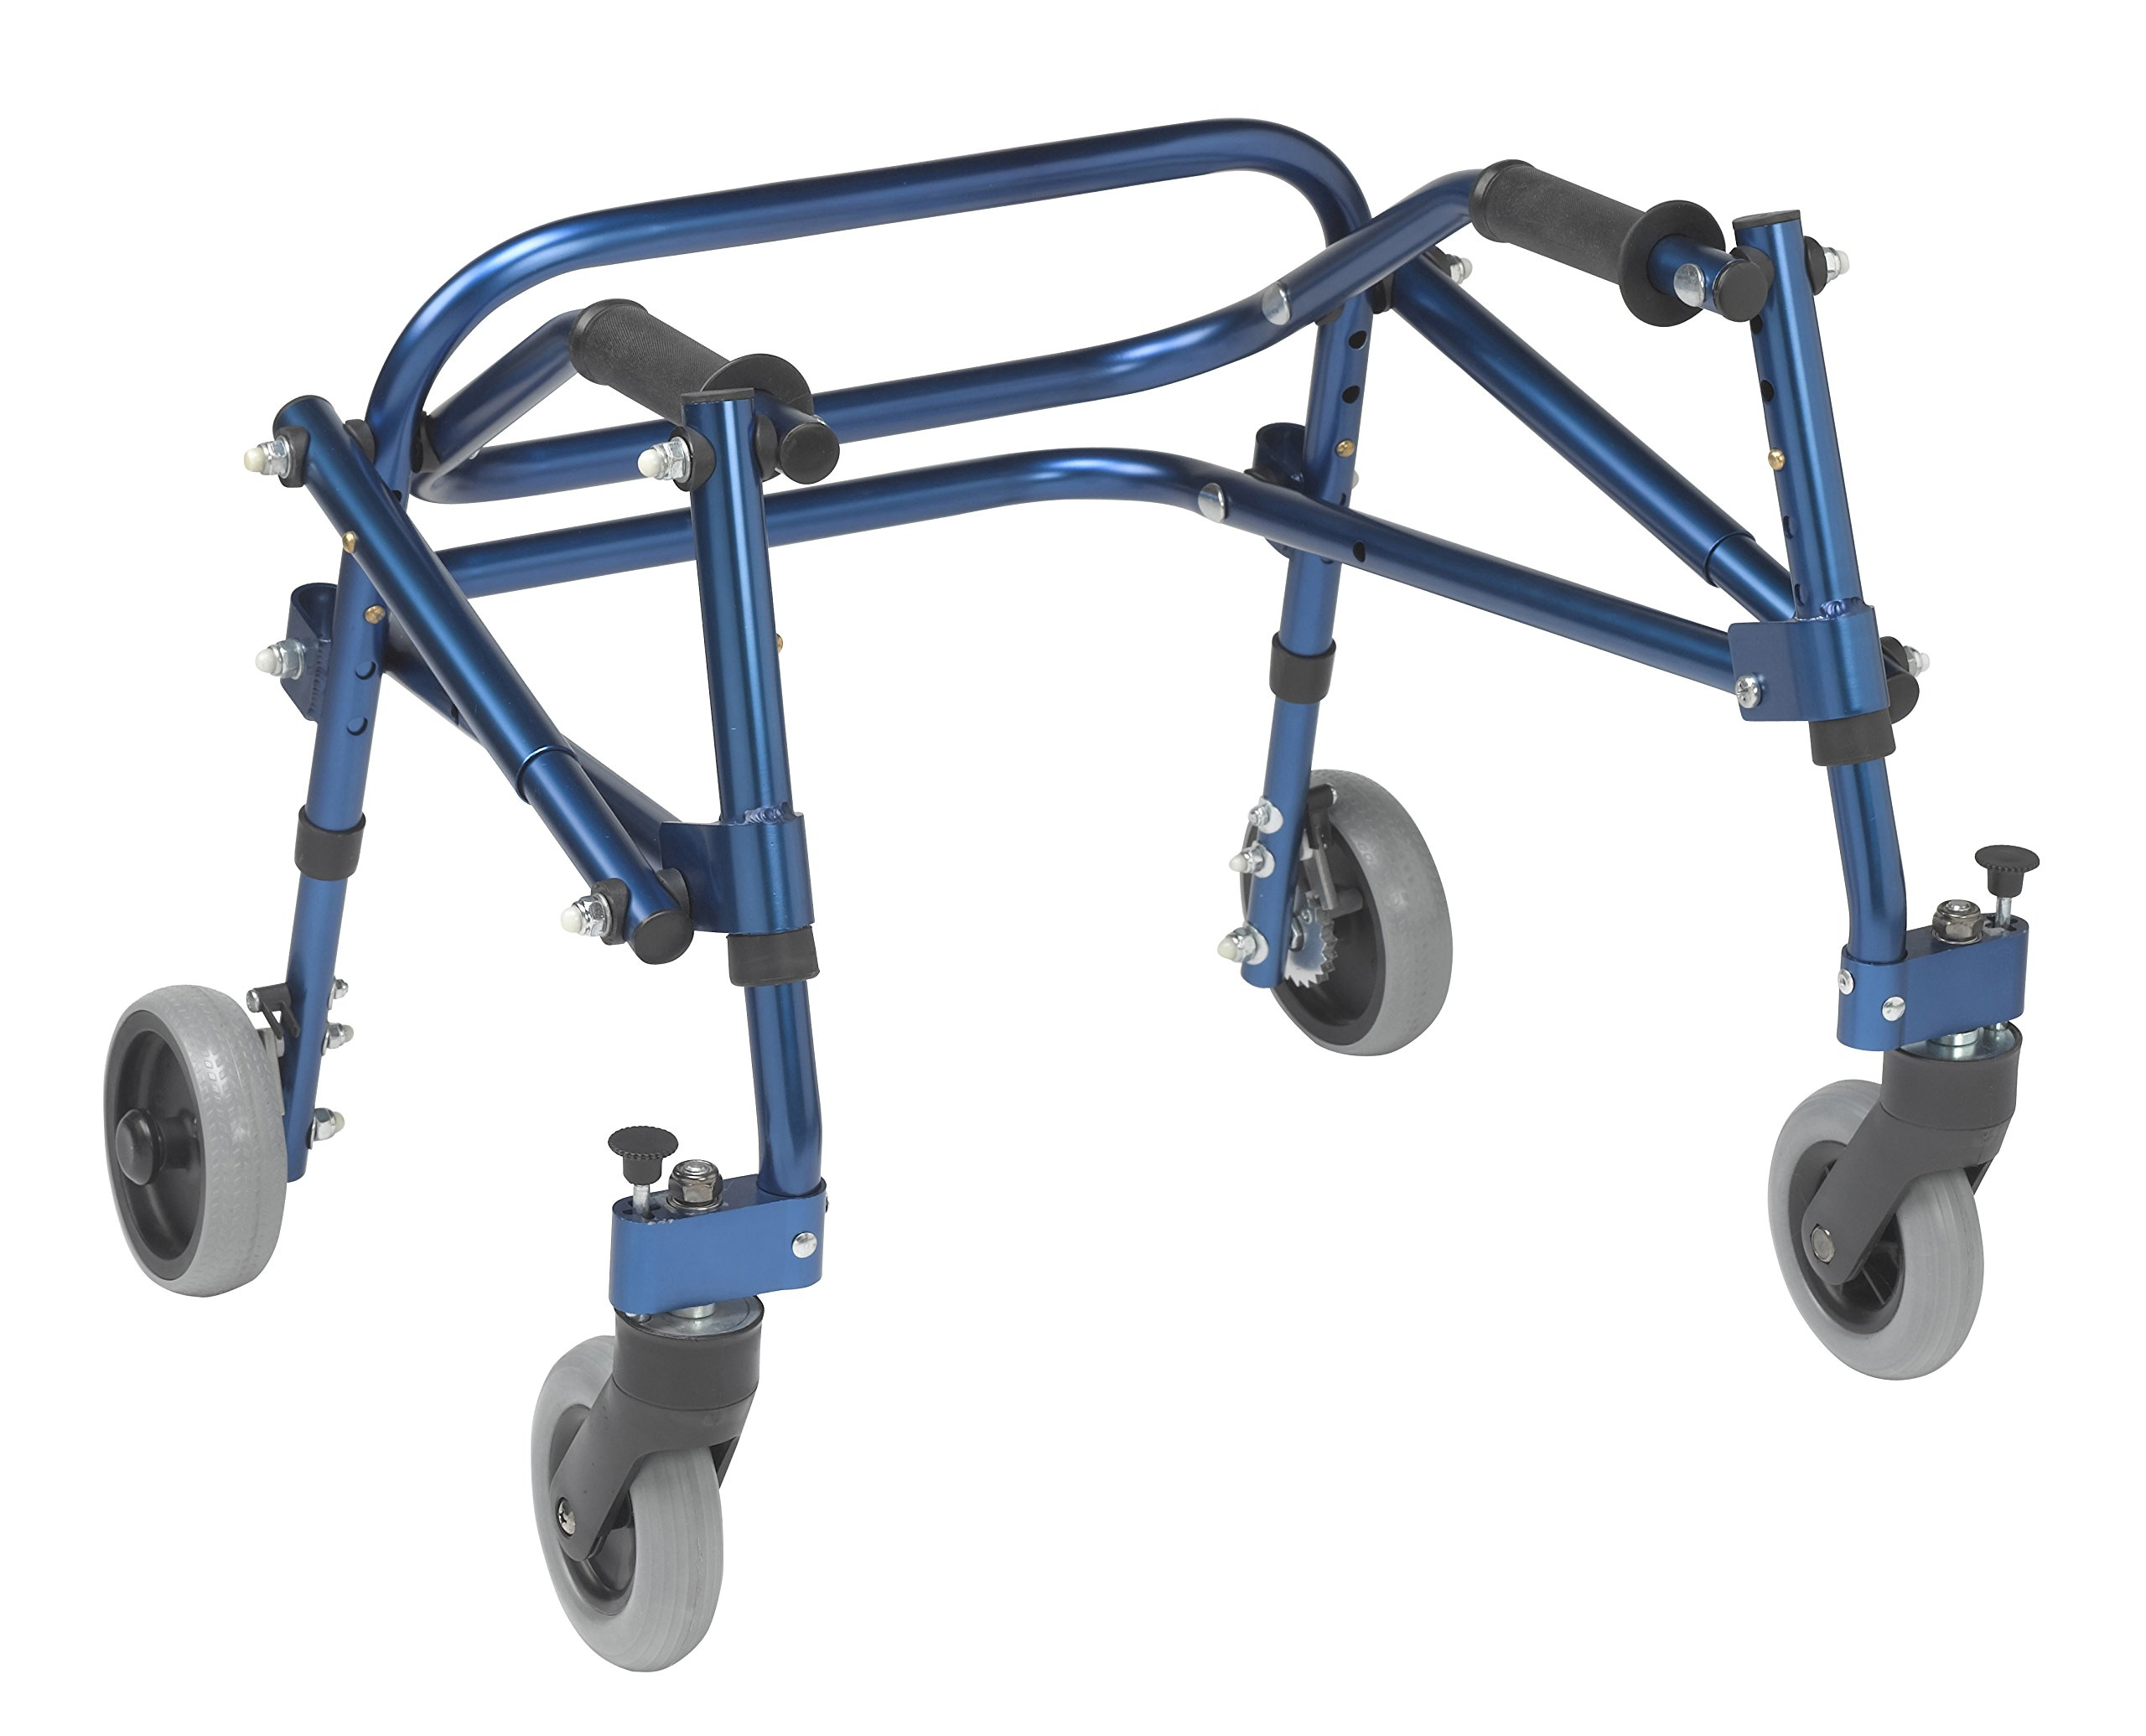 Inspired by Drive Nimbo 2G Lightweight Posterior Walker, Knight Blue, Extra Small